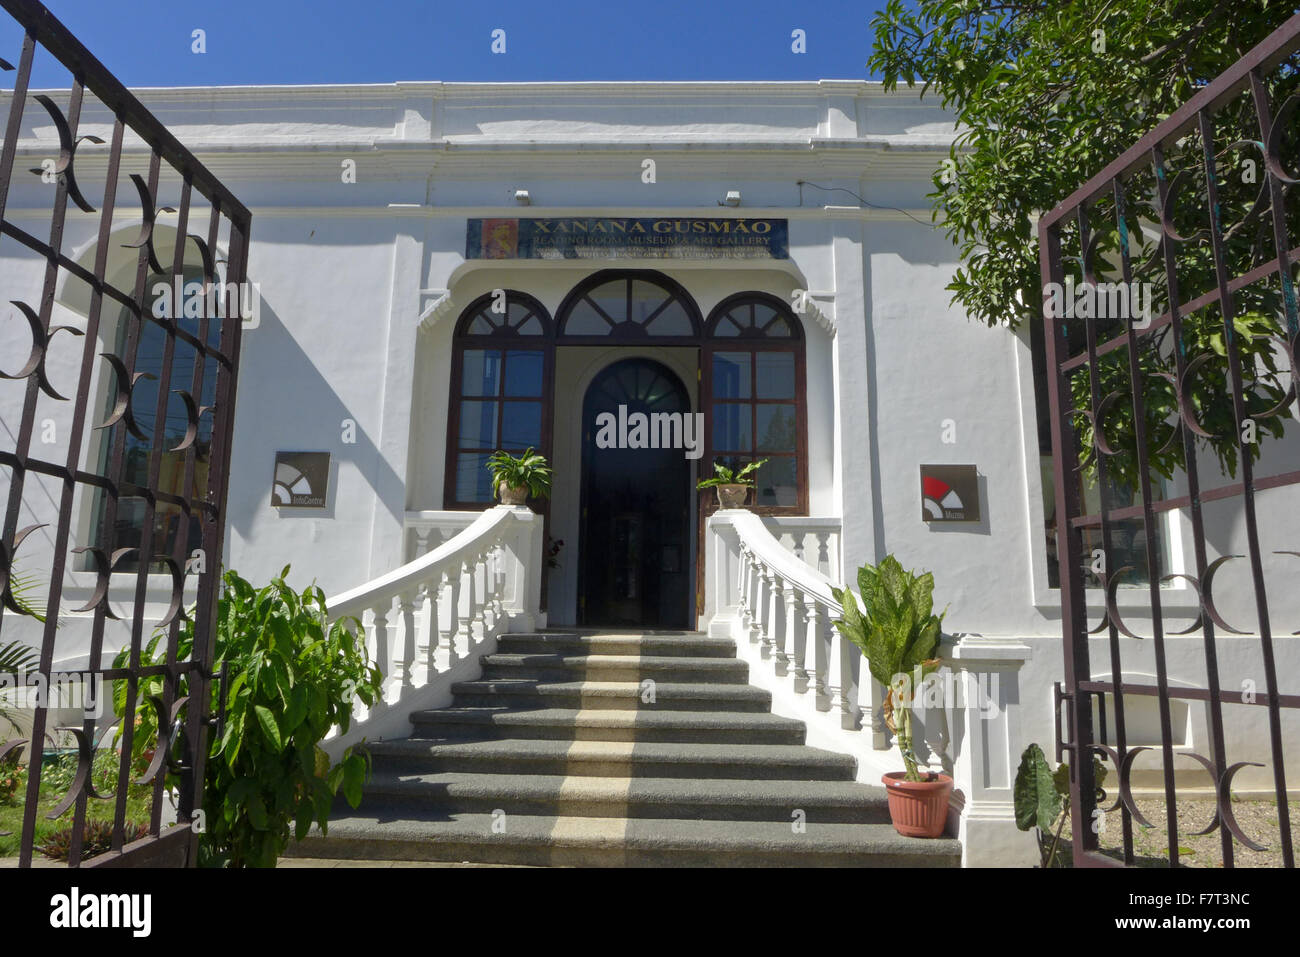 The Xanana Gusmao Reading Room  in Dili East Timor named after the former Prime Minister and President. - Stock Image